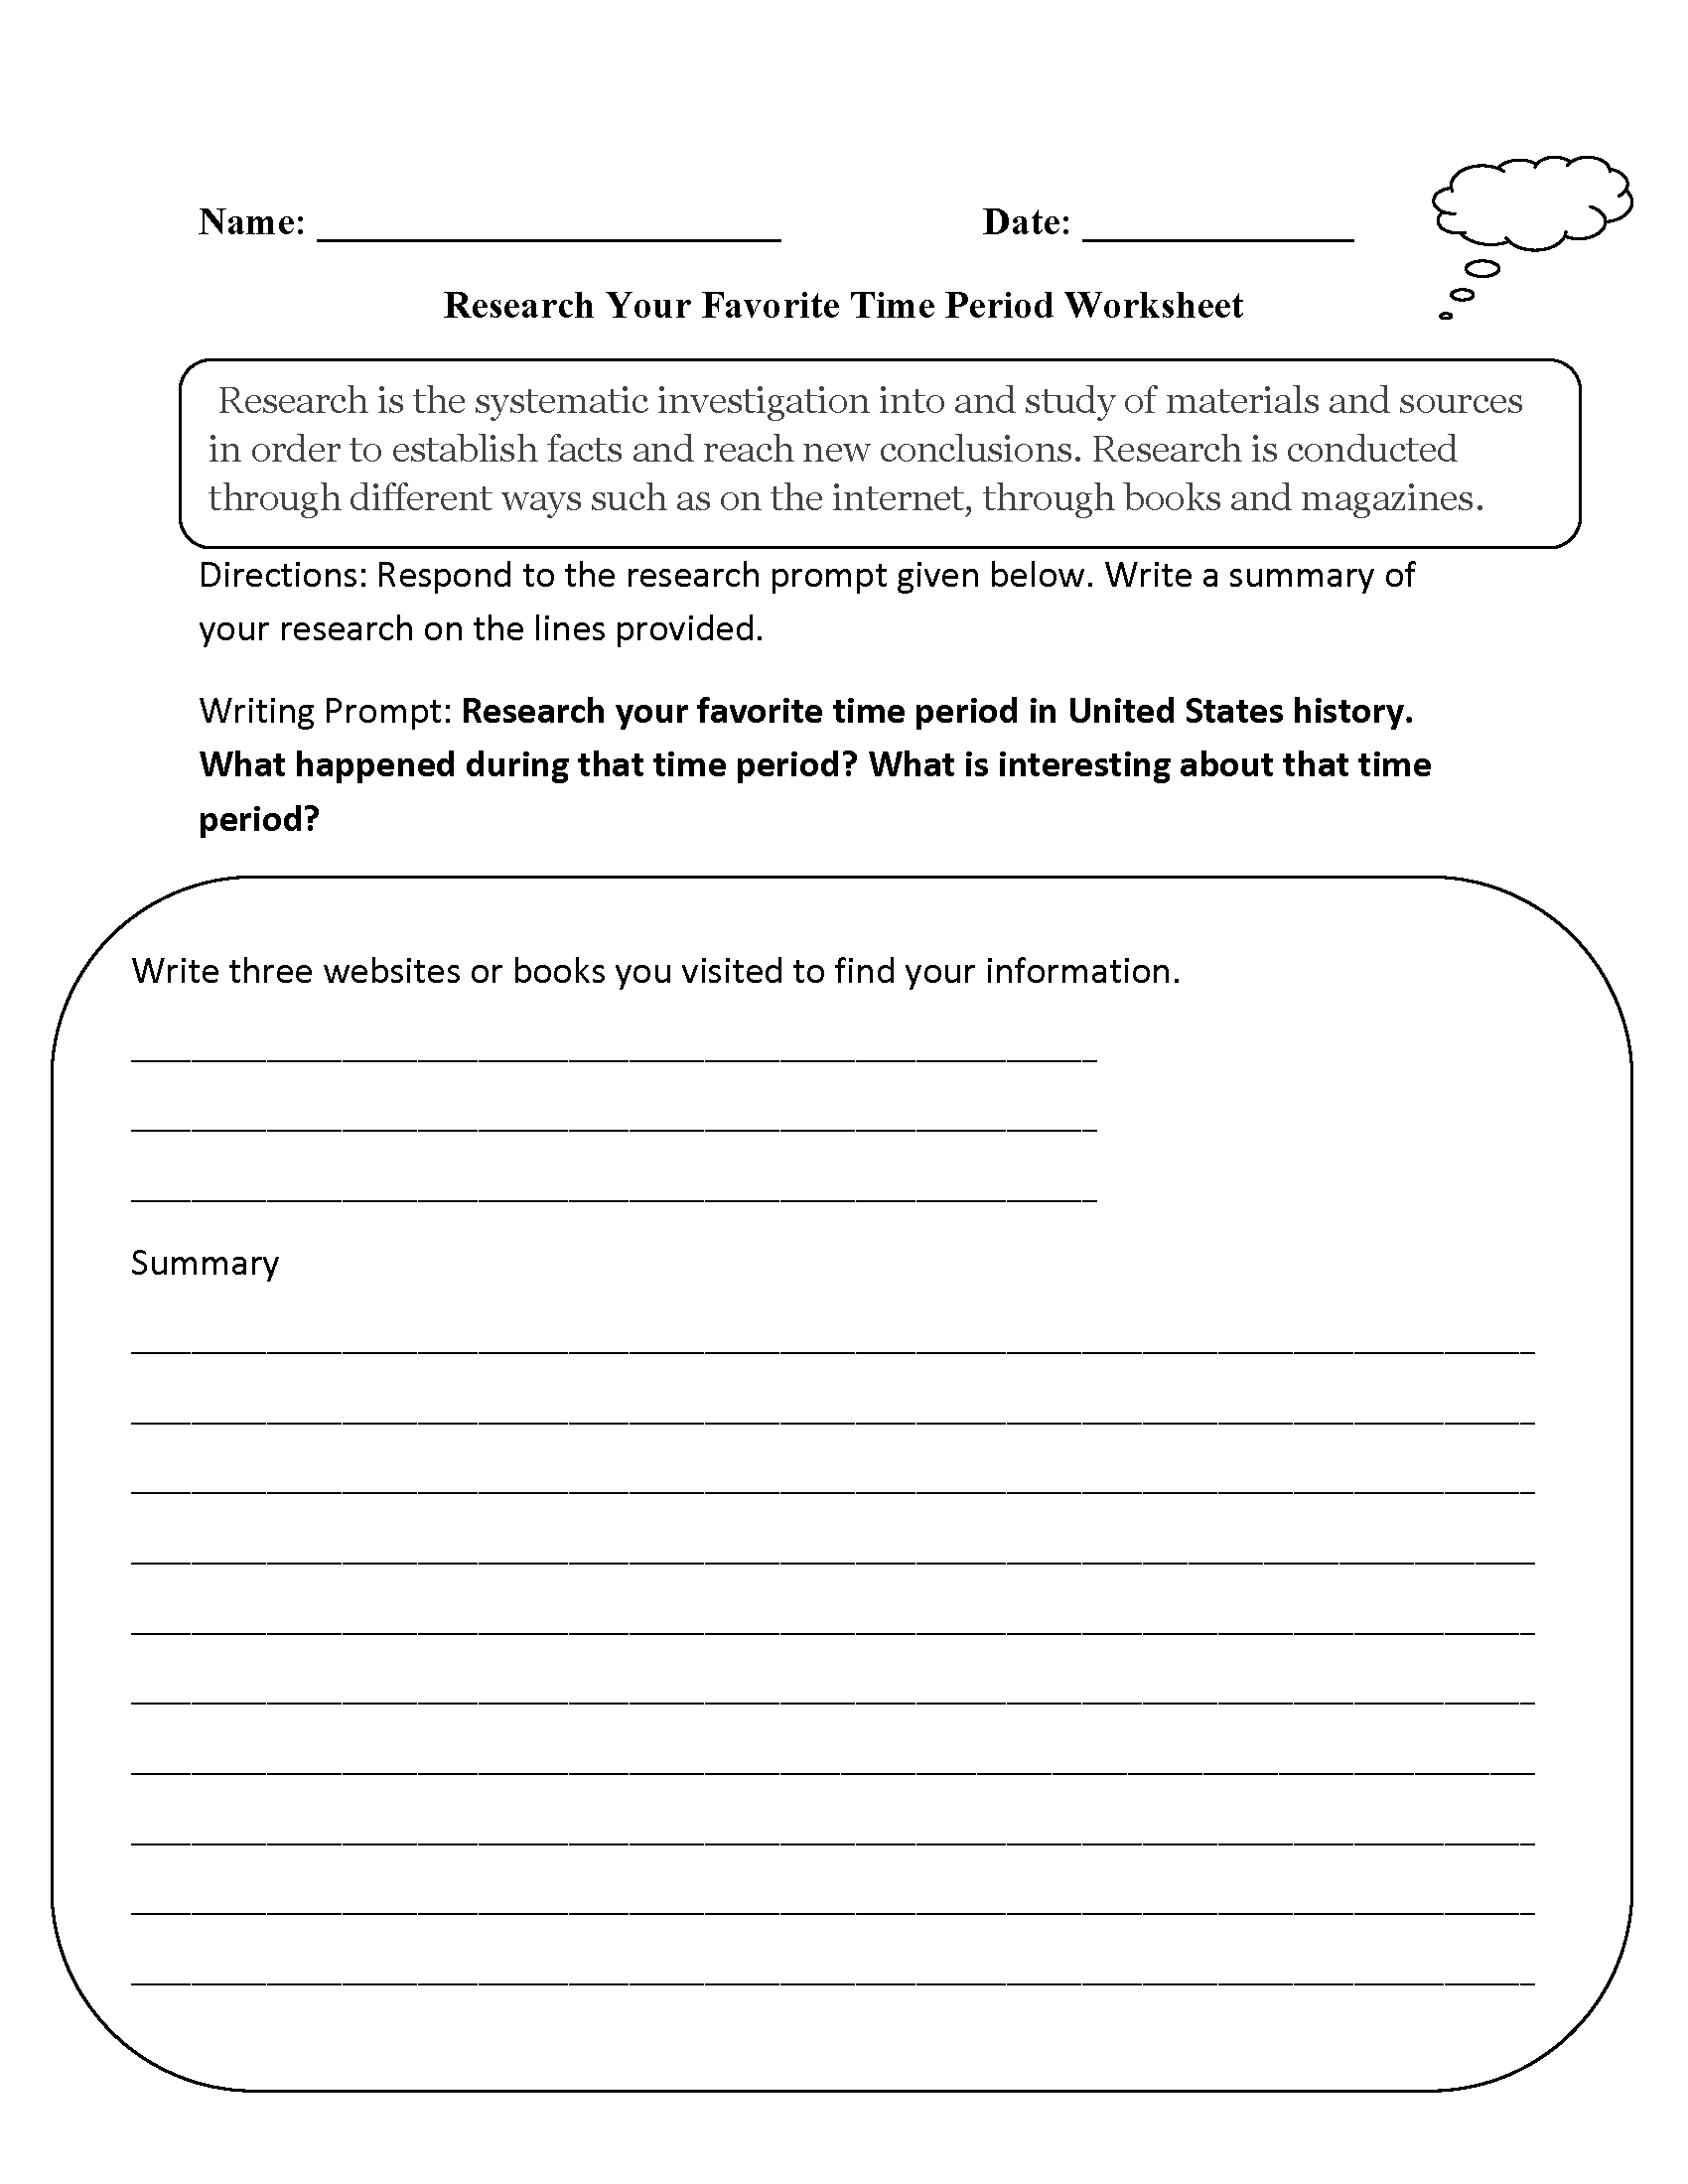 Research Favorite Time Period Worksheet Expository Writing Expository Writing Prompts Water Cycle Worksheet